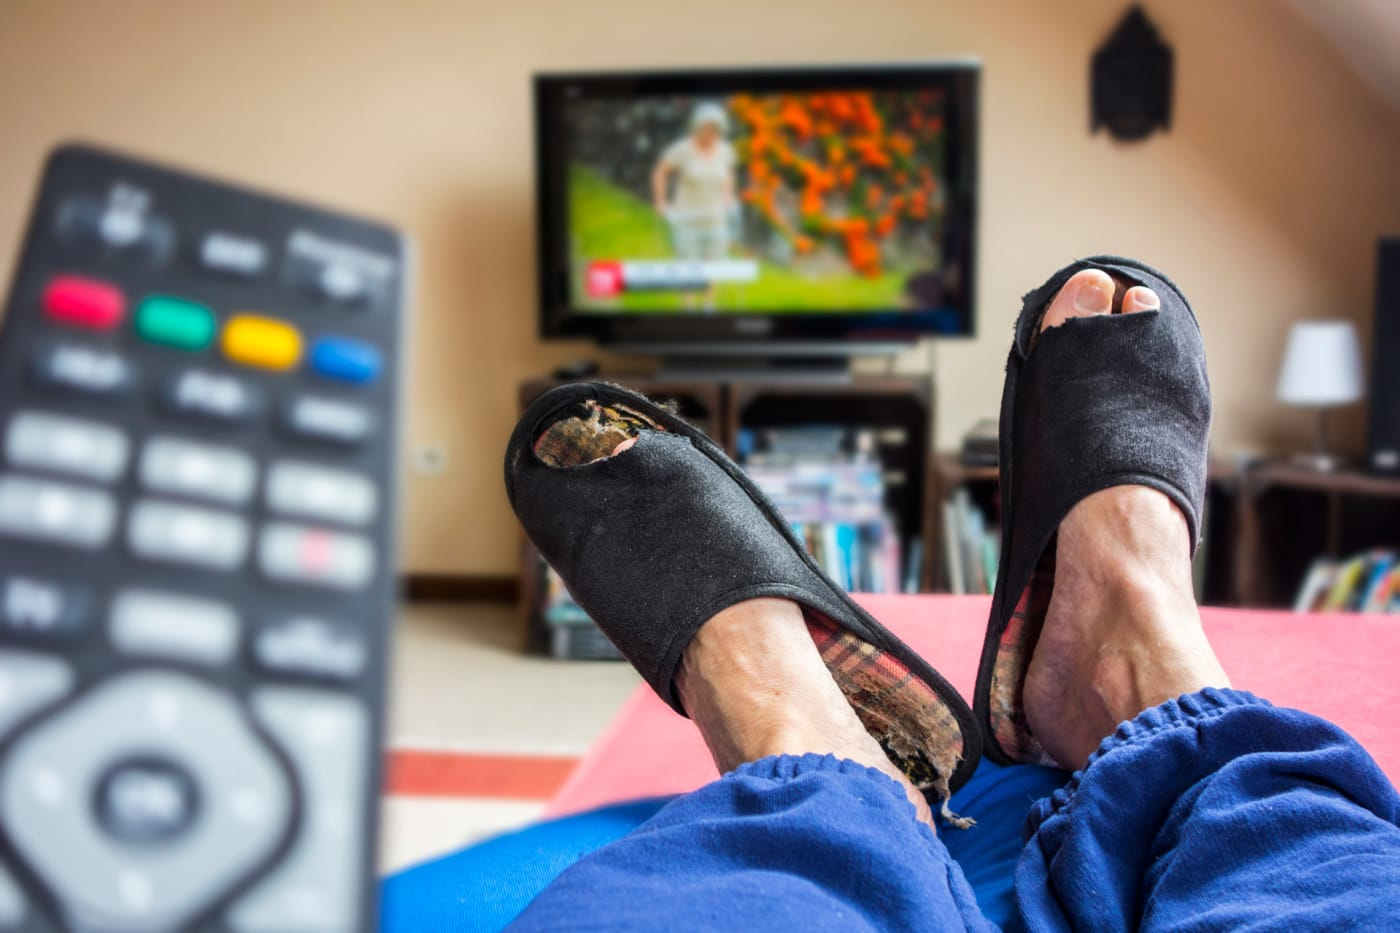 Remote control and couch potato, lazy man in comfy chair wearing worn slippers